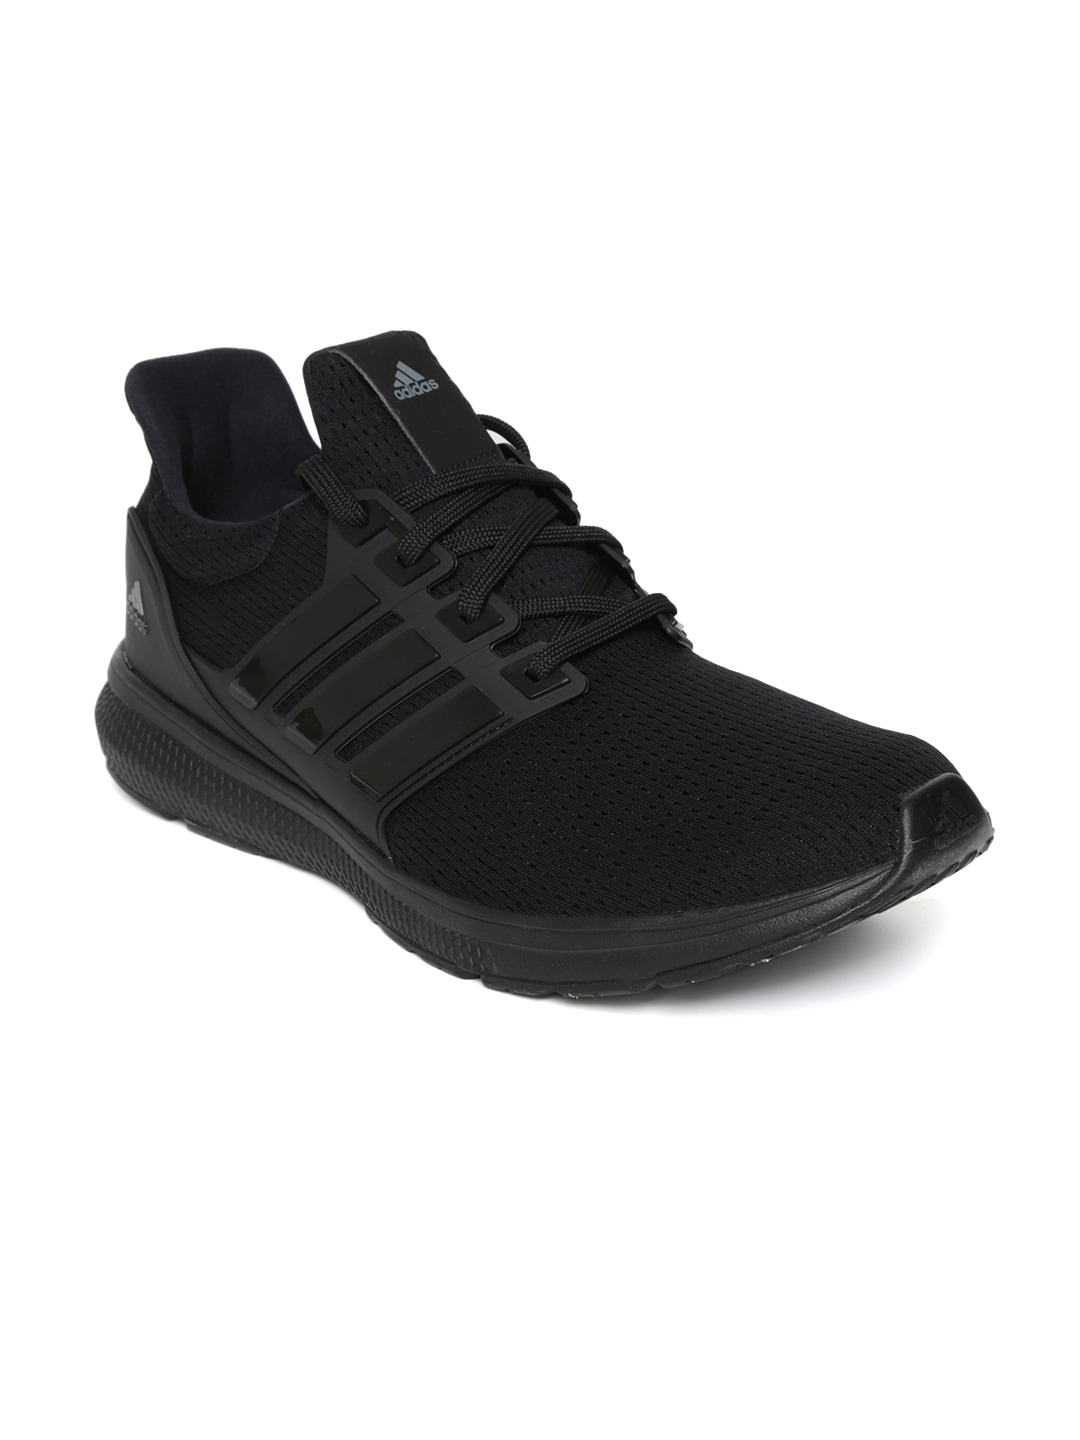 buy popular 1c74b f9791 Adidas Shoes - Buy Adidas Shoes for Men   Women Online - Myntra